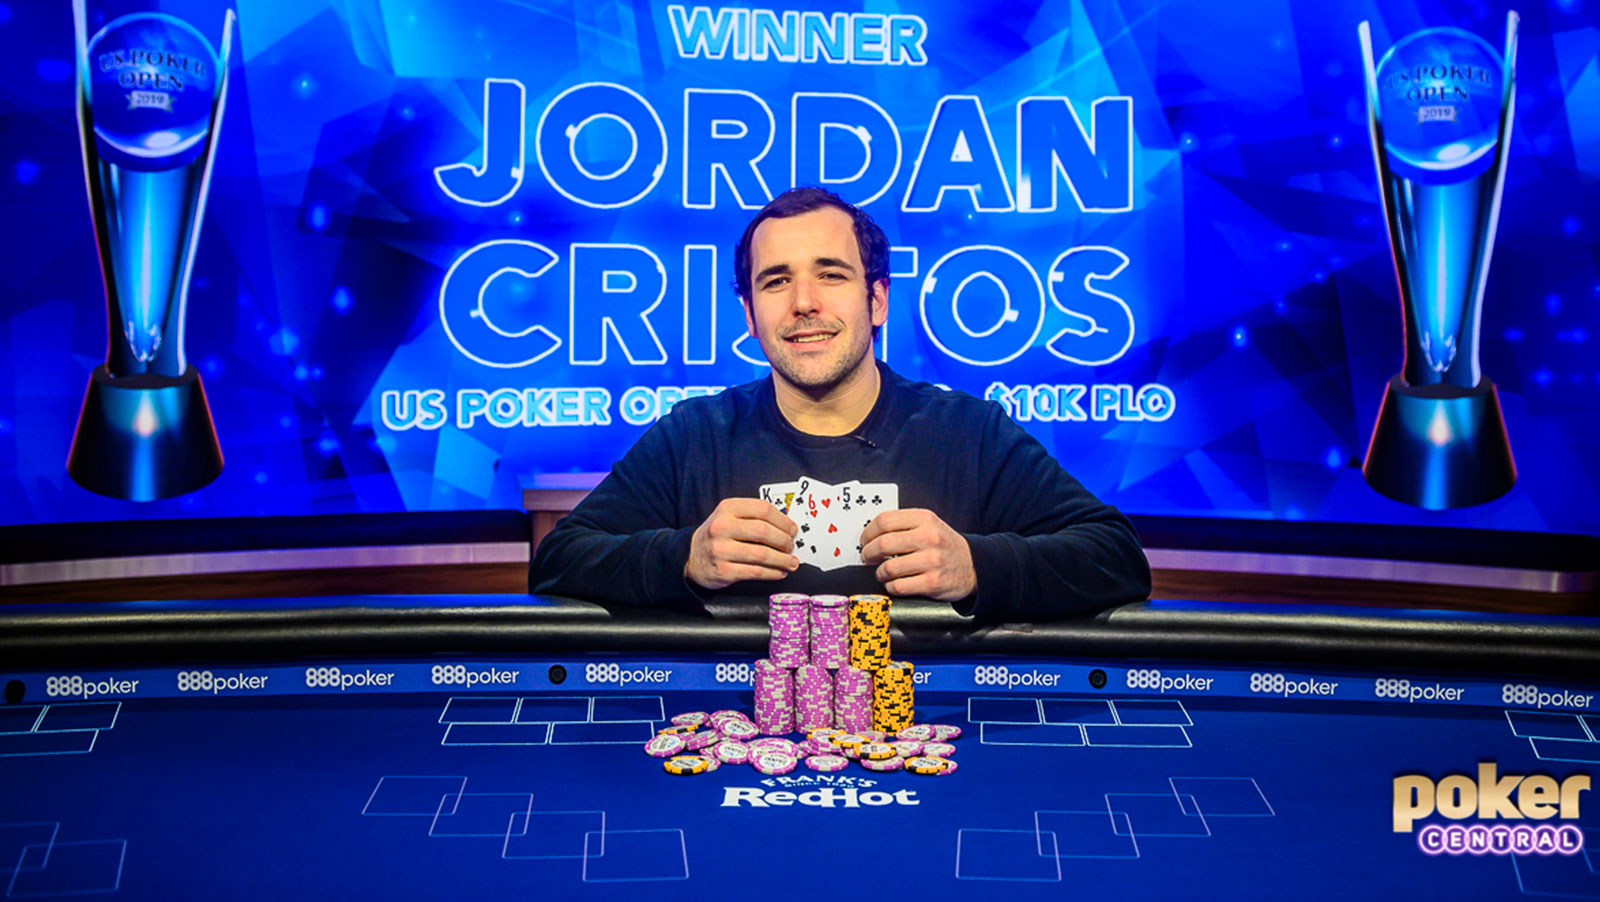 US Poker Open News: wins for Cristos and Roberts; Chidwick leads overall